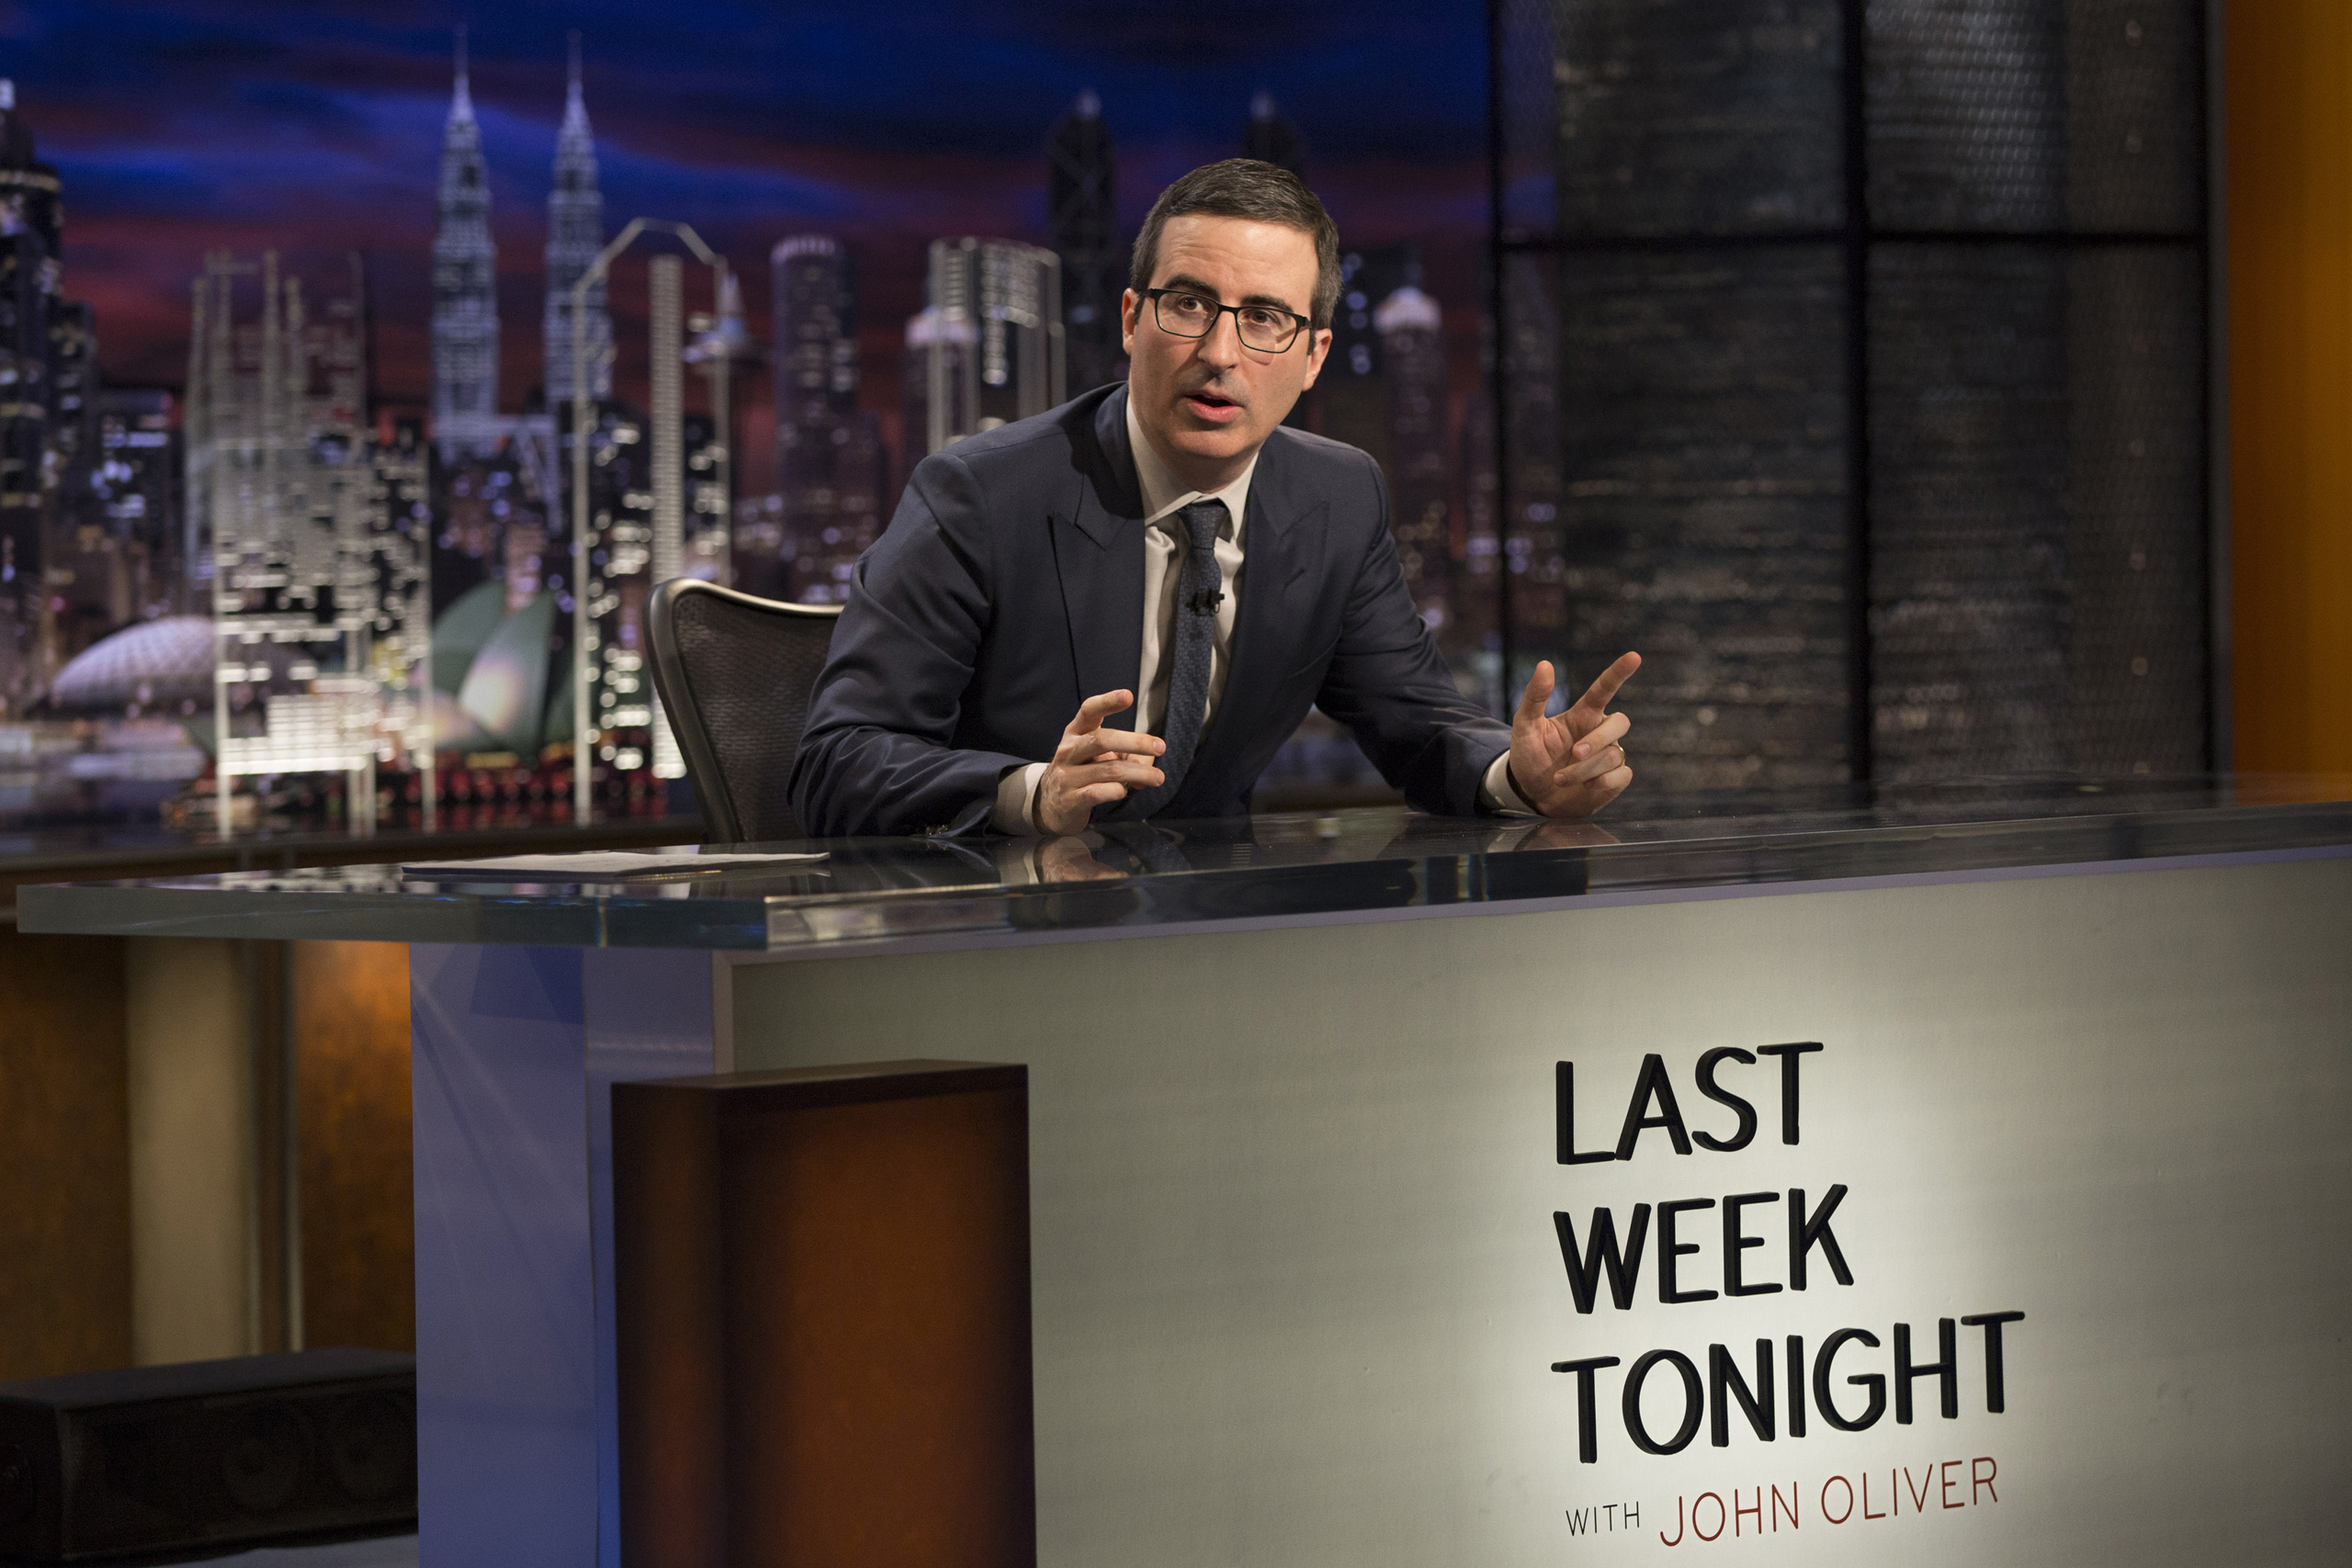 John Oliver on  Last Week Tonight with John Oliver